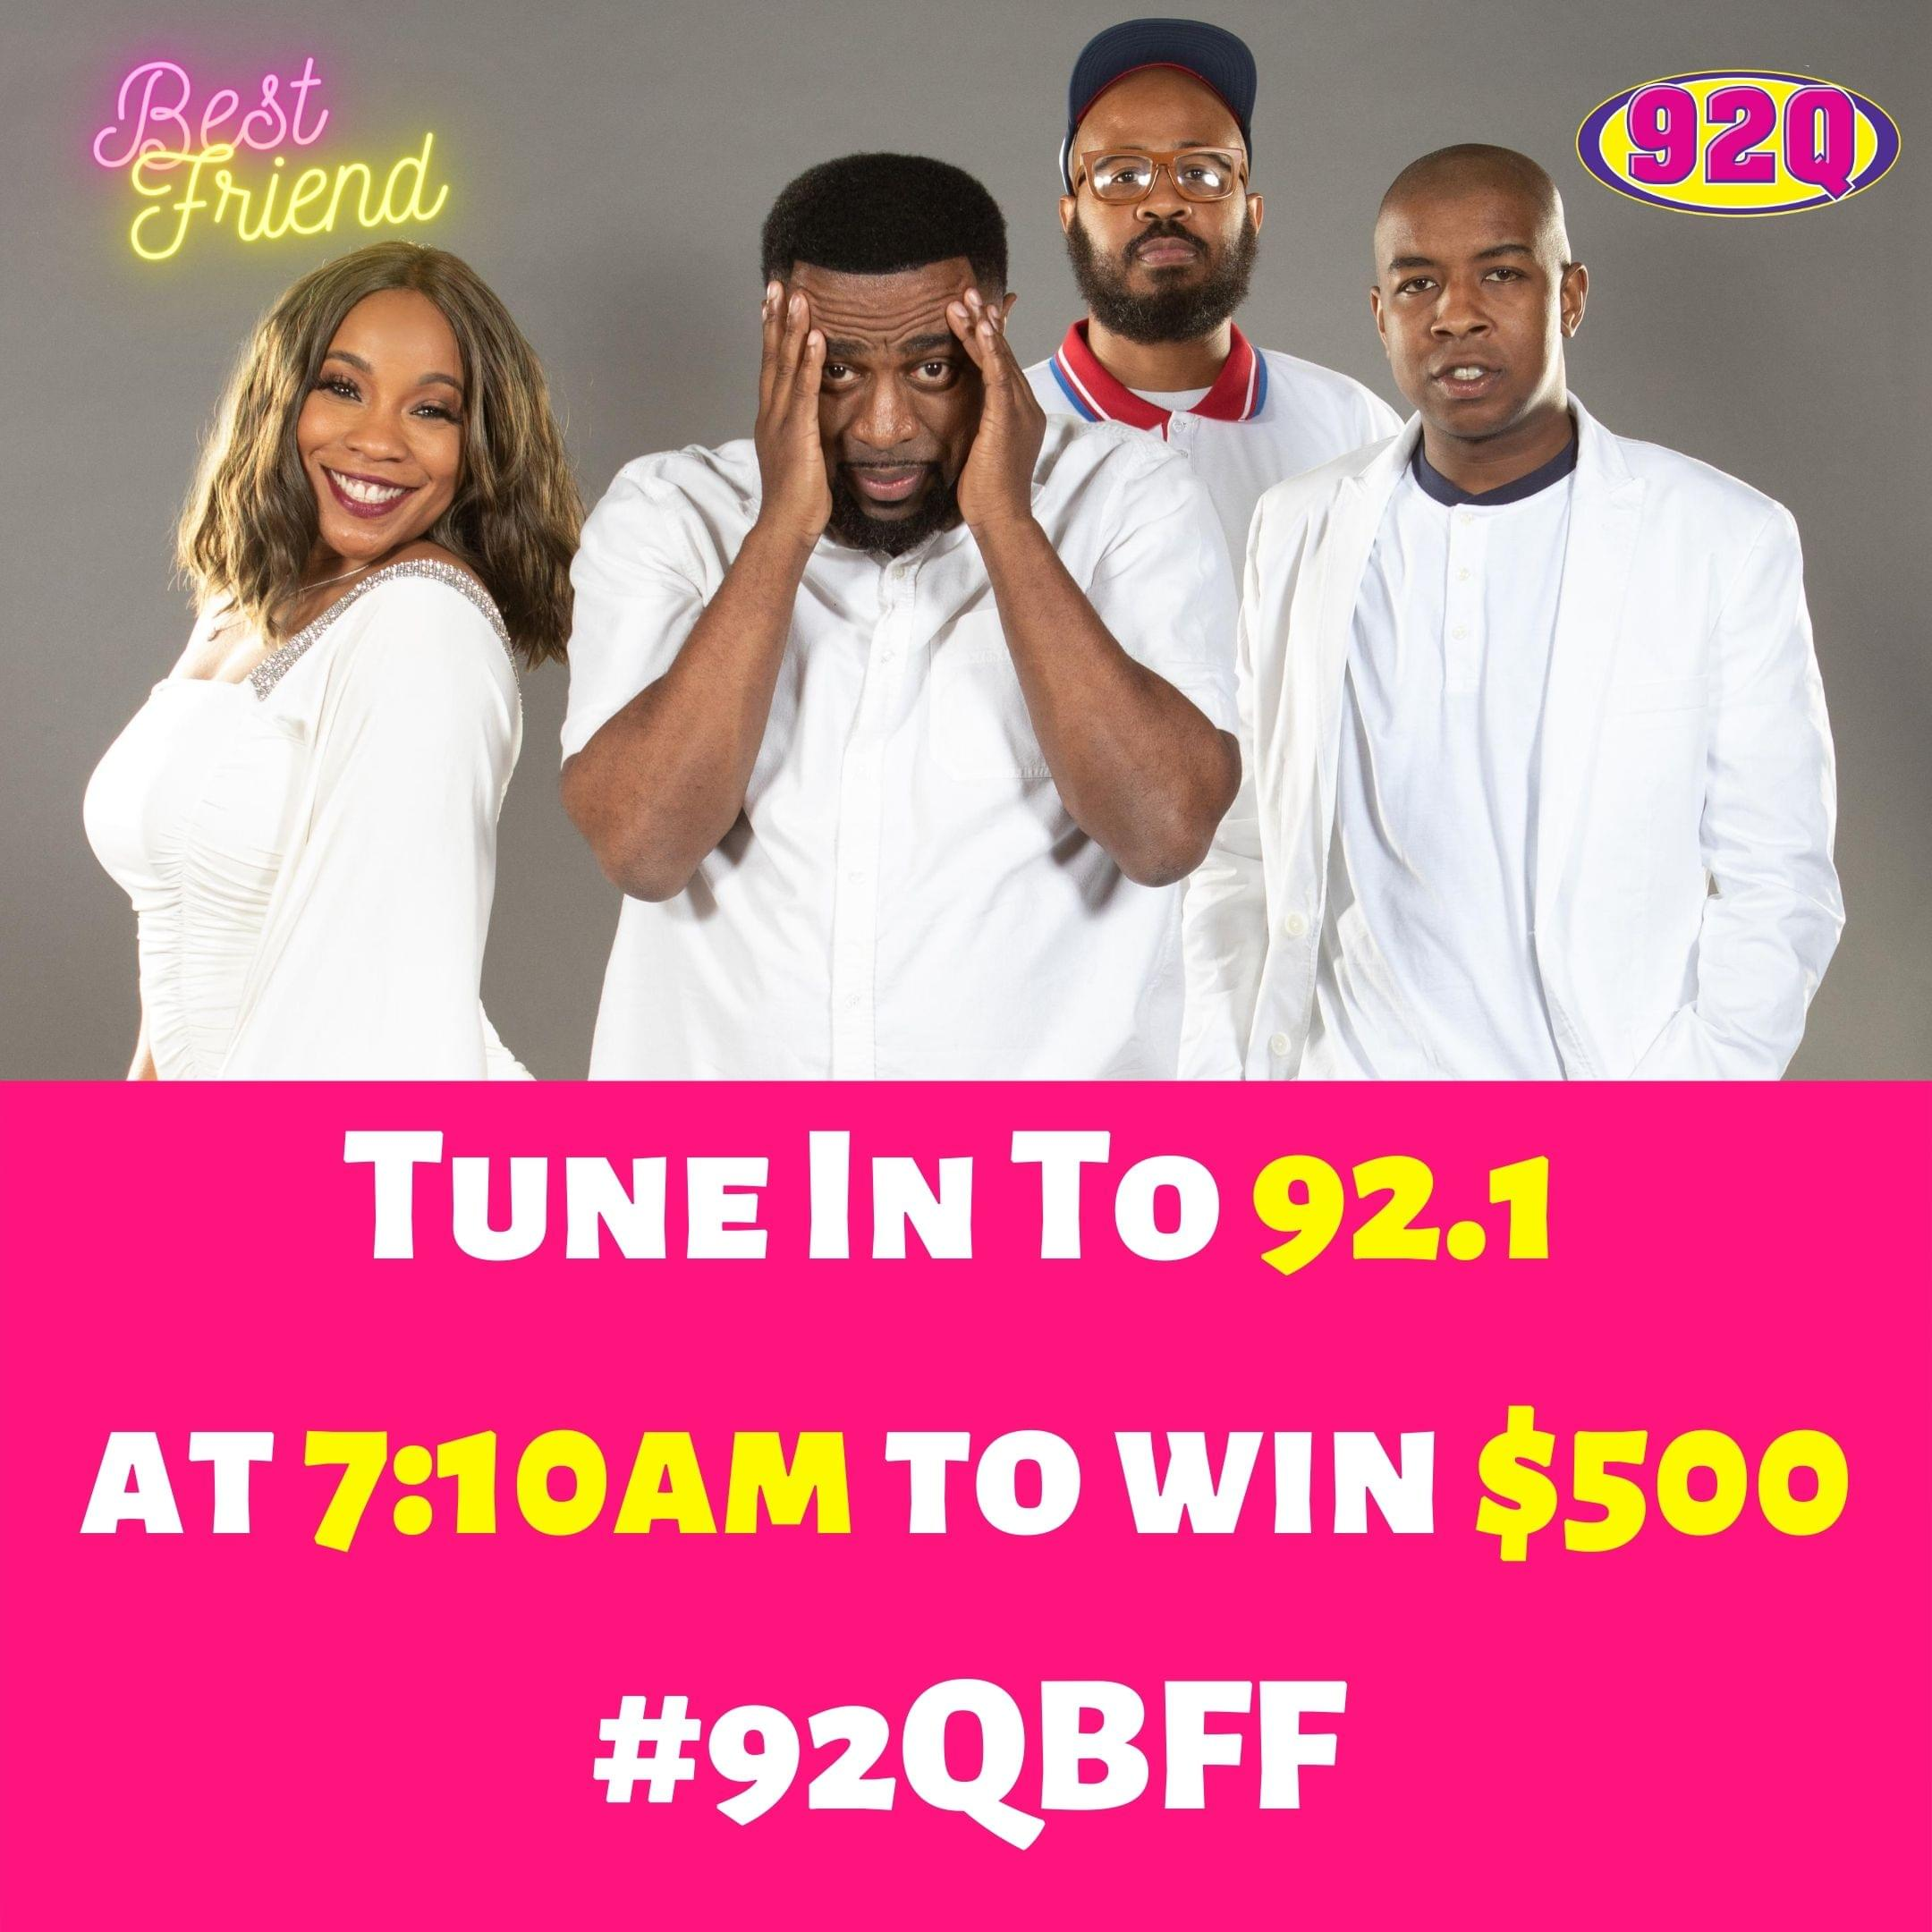 Who's your Best Friend? #92QBFF